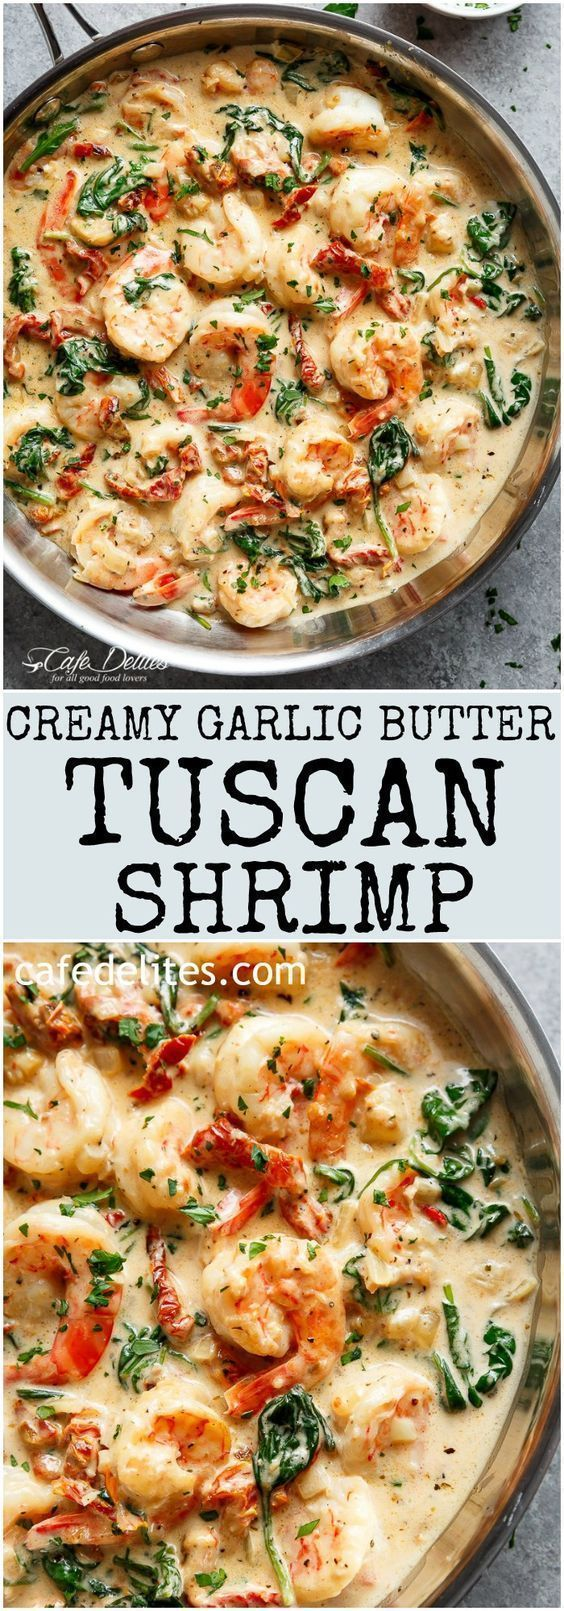 Creamy Garlic Butter Tuscan Shrimp coated in a light and creamy sauce filled with garlic, sun dried tomatoes and spinach! Packed with incredible flavours! #shrimprecipes